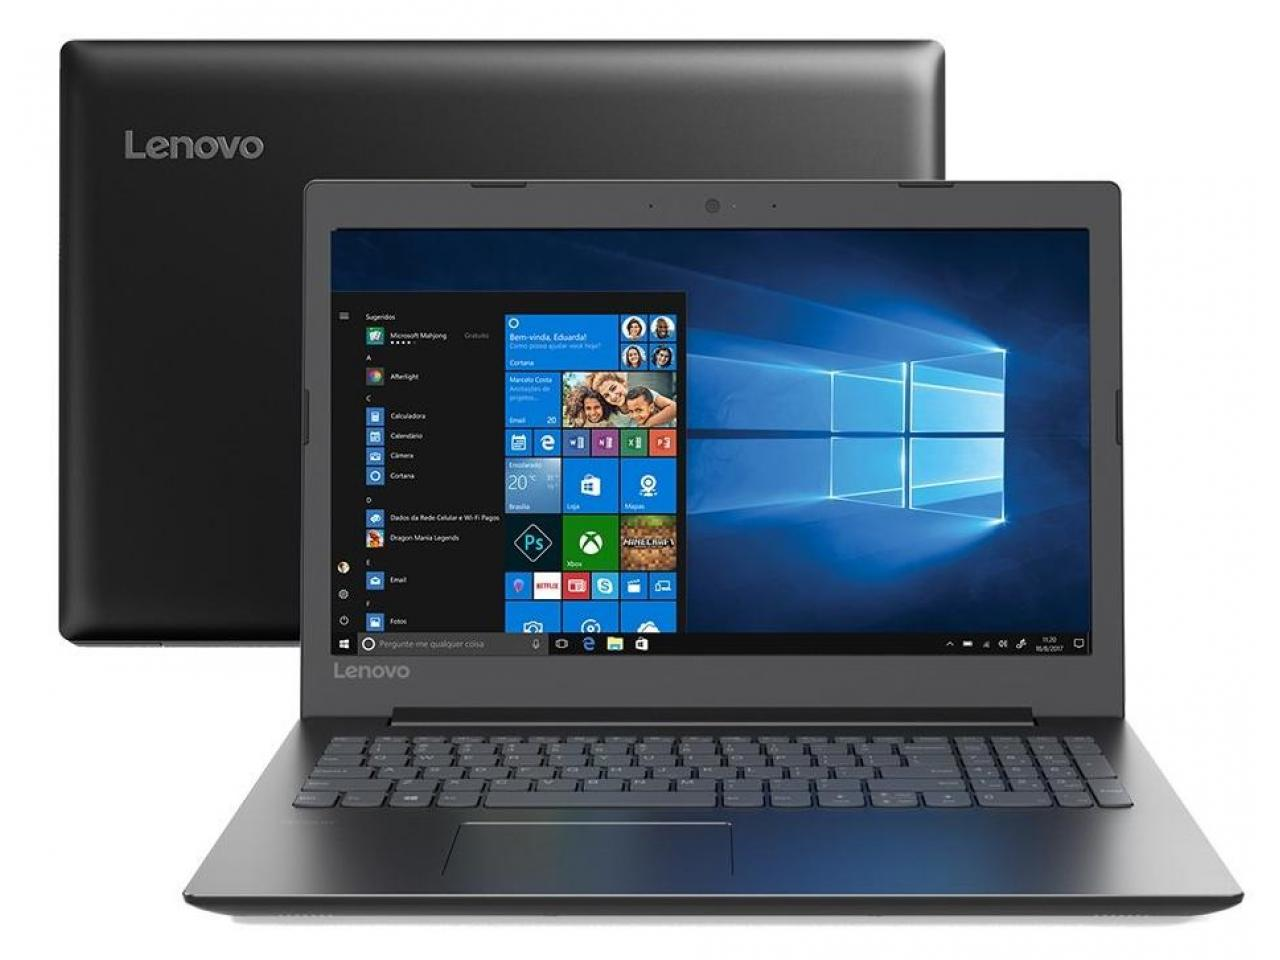 NOTEBOOK LENOVO B330-15IKBR INTEL CORE I5 8250U 8GB (2X4GB) 1TB 15.6 FULL HD WINDOWS 10 PRO PRETO - In-Pacto Informática